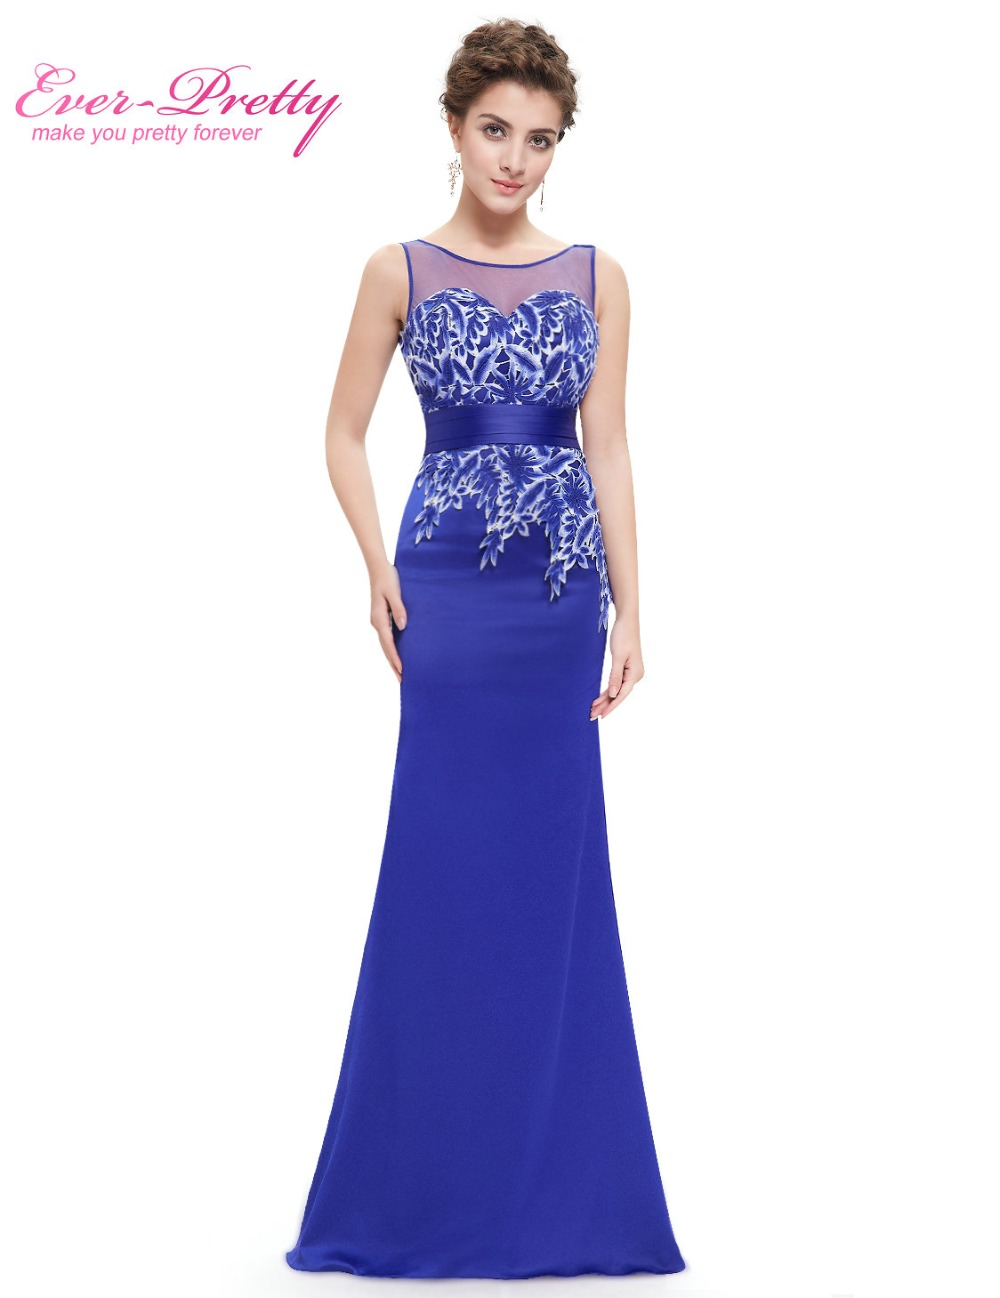 Compare prices on for ever yours online shoppingbuy low price sapphire blue paret evening dresses ever pretty he08757 long sleeveless evening dress mermaid lace evening dress ombrellifo Image collections